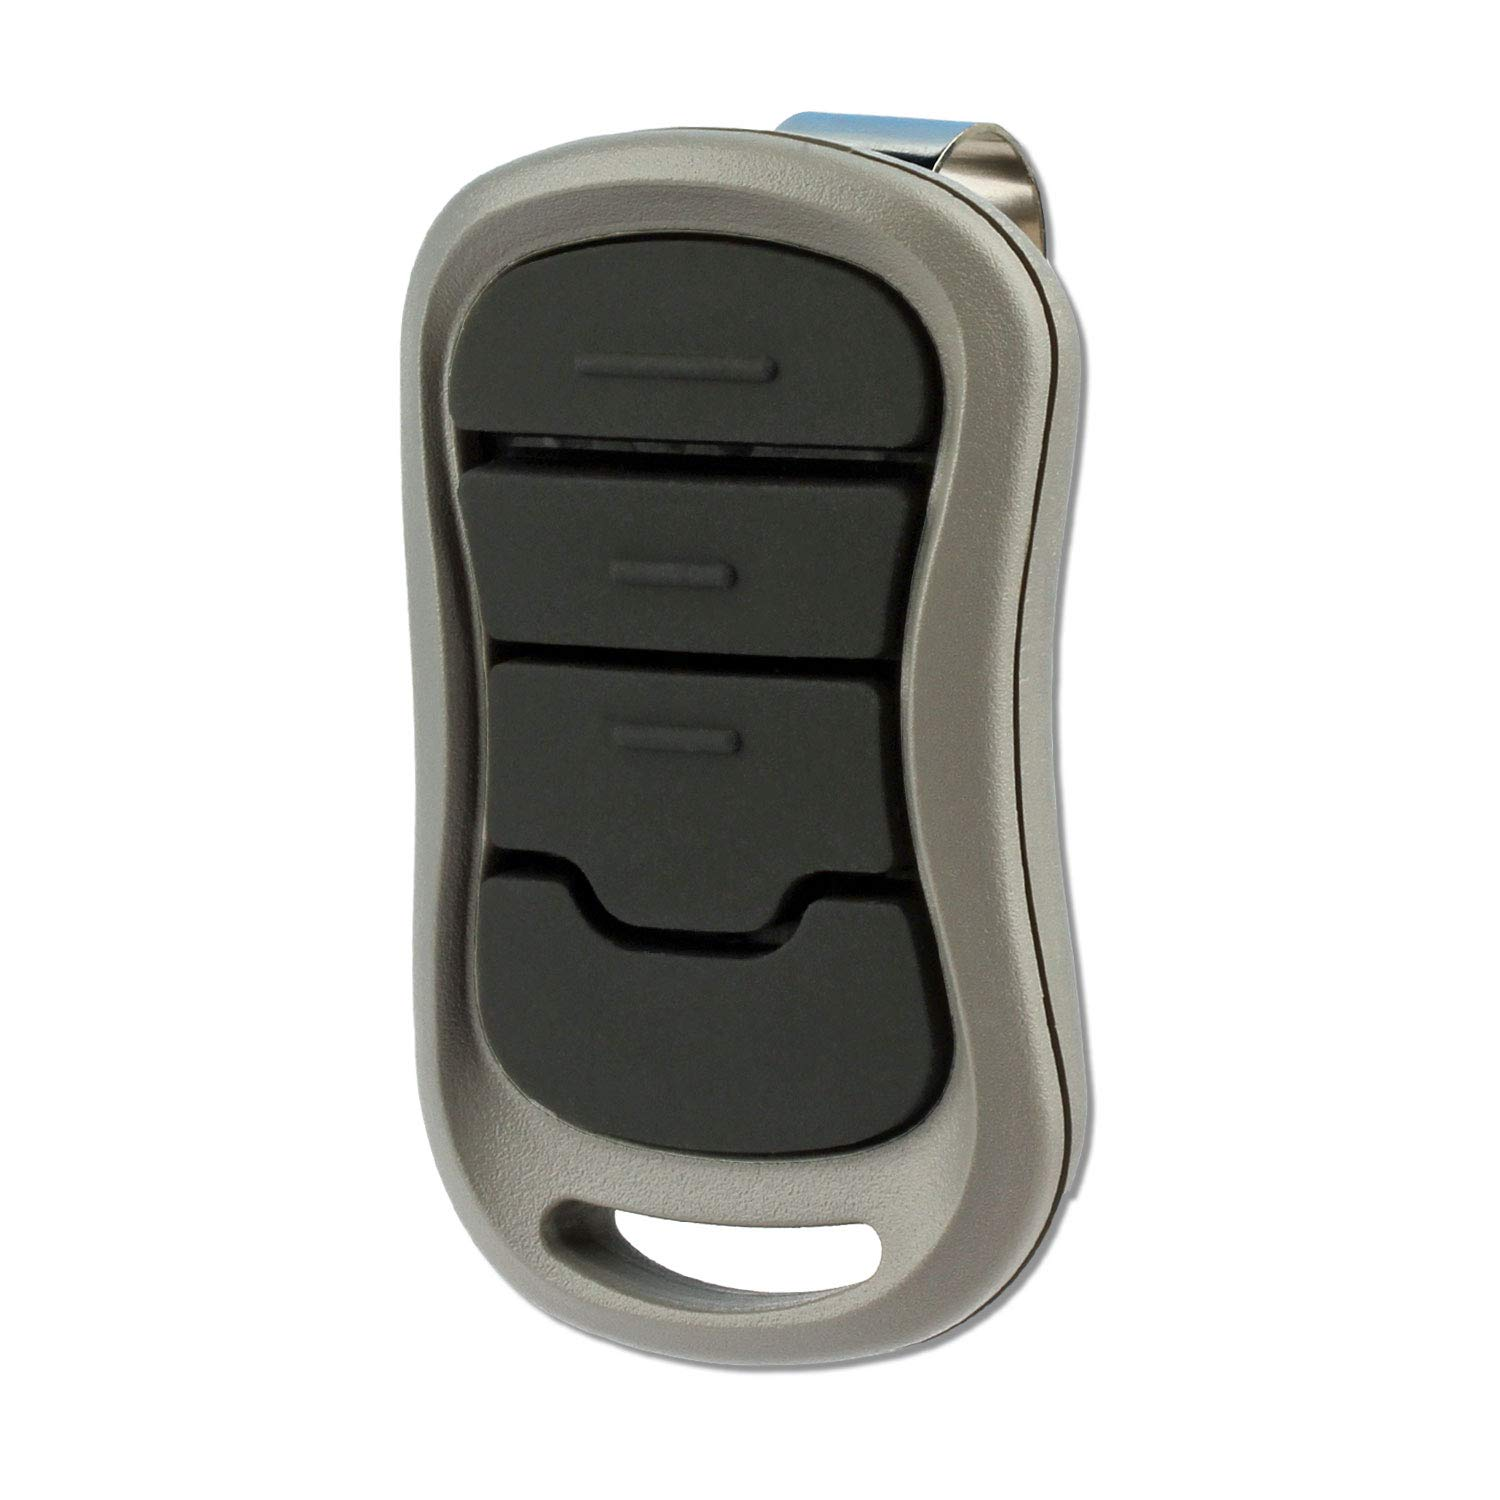 Garage Door Opener Remote for Genie Intellicode G3T-R